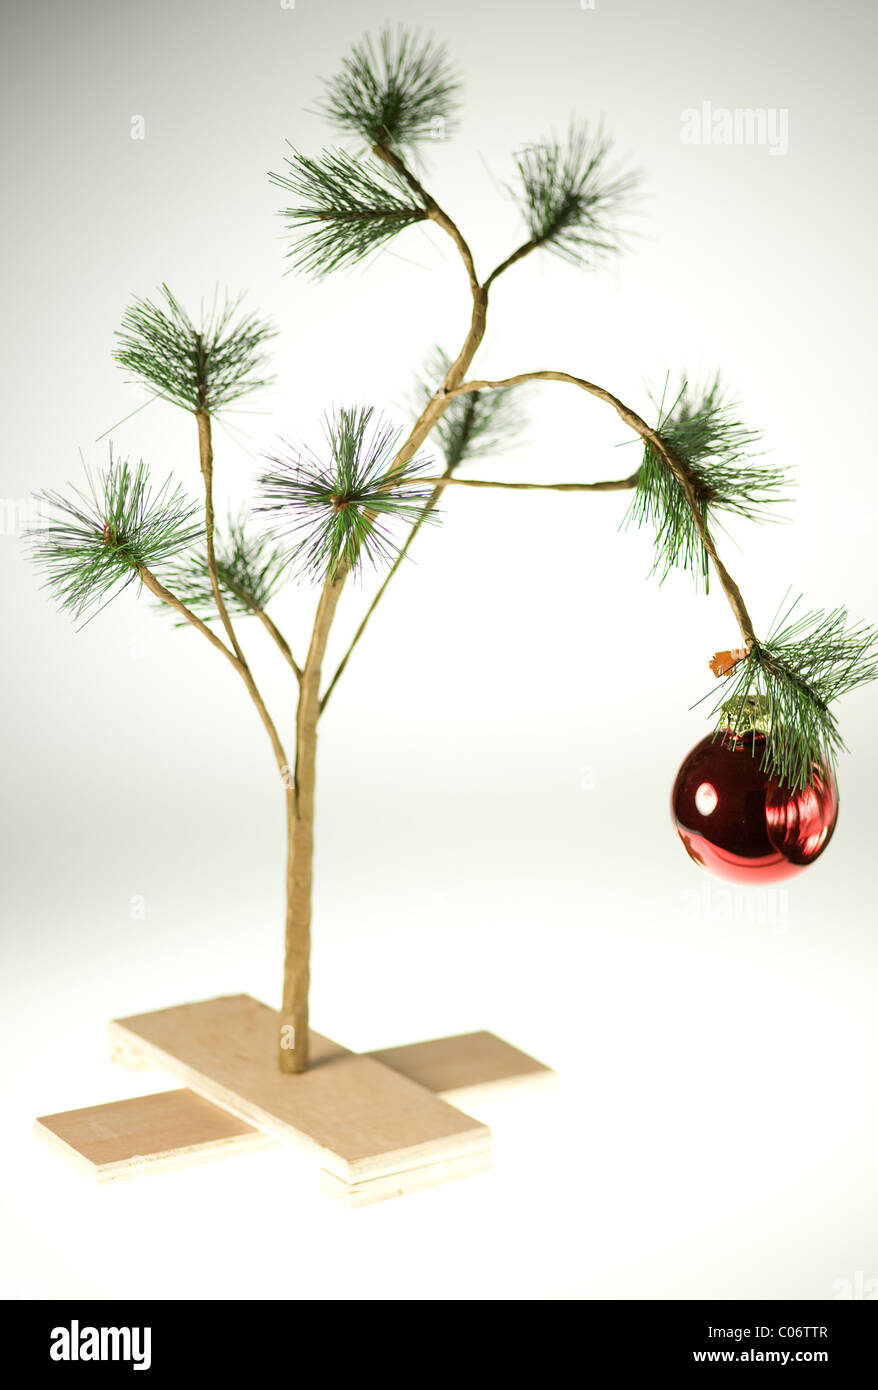 Charlie Brown Christmas Stock Photos & Charlie Brown Christmas Stock ...